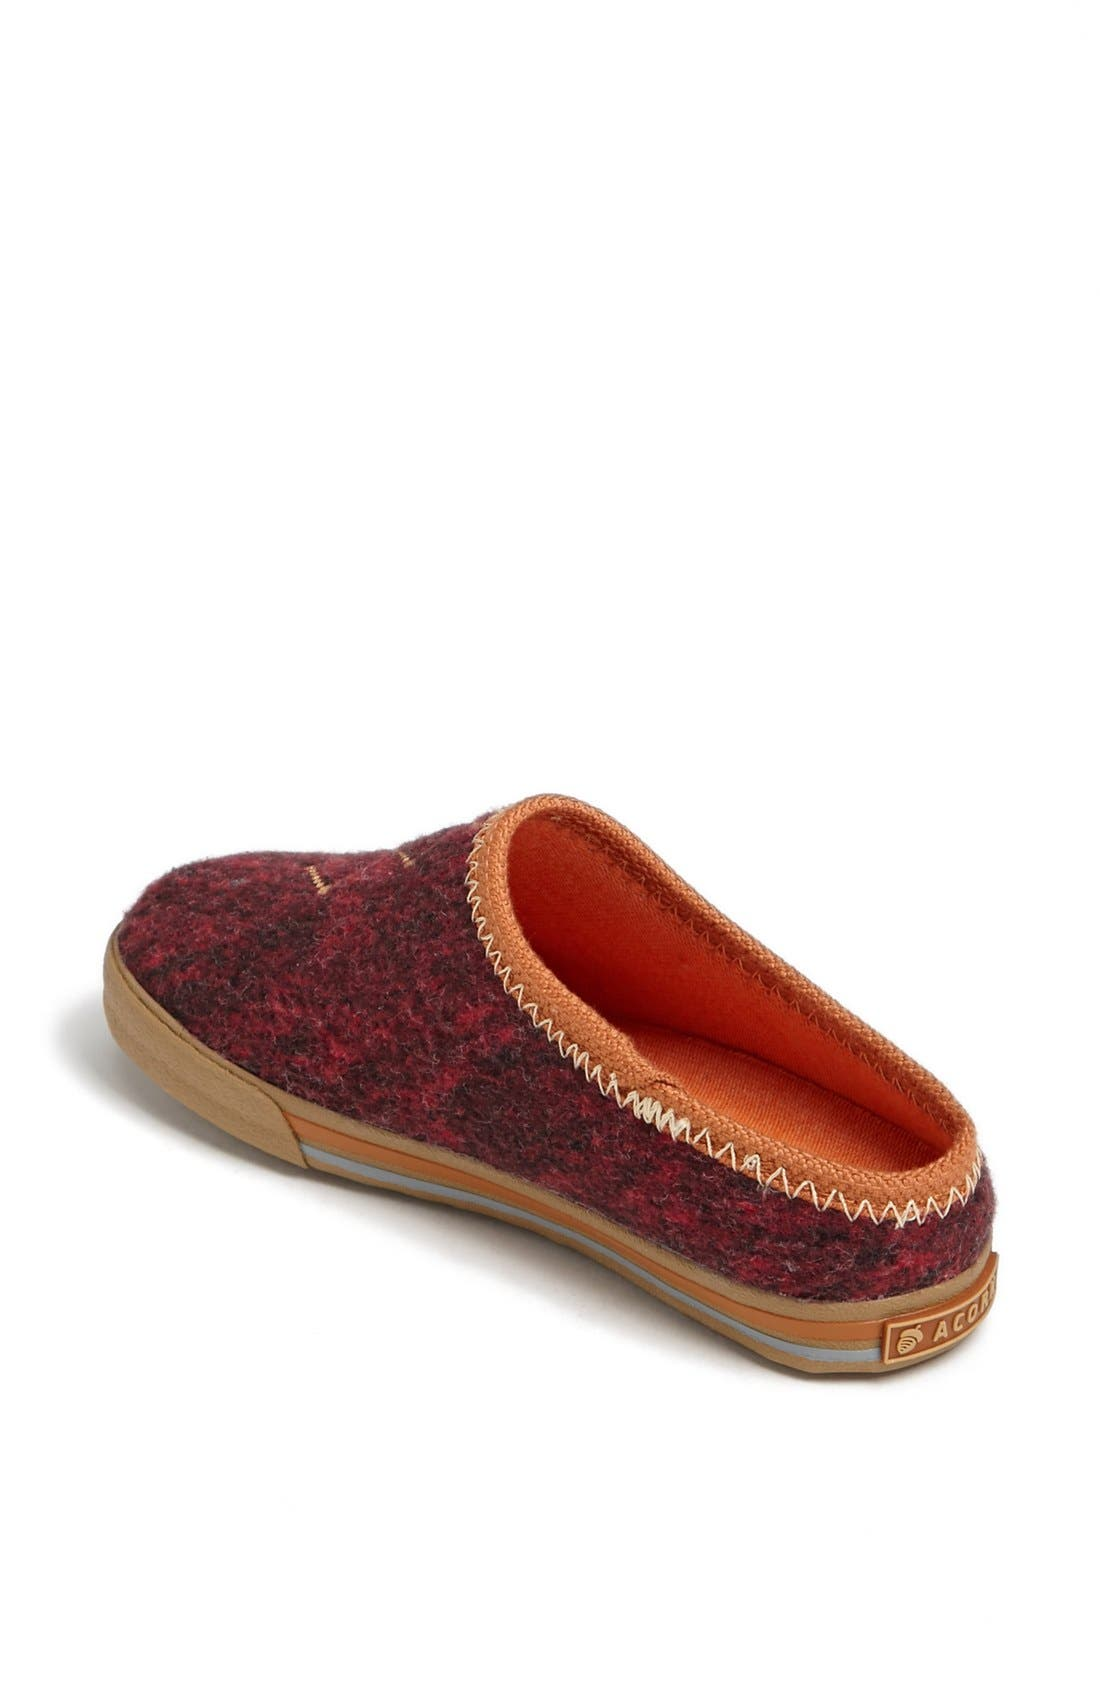 Alternate Image 2  - Acorn 'Crossroads' Slipper